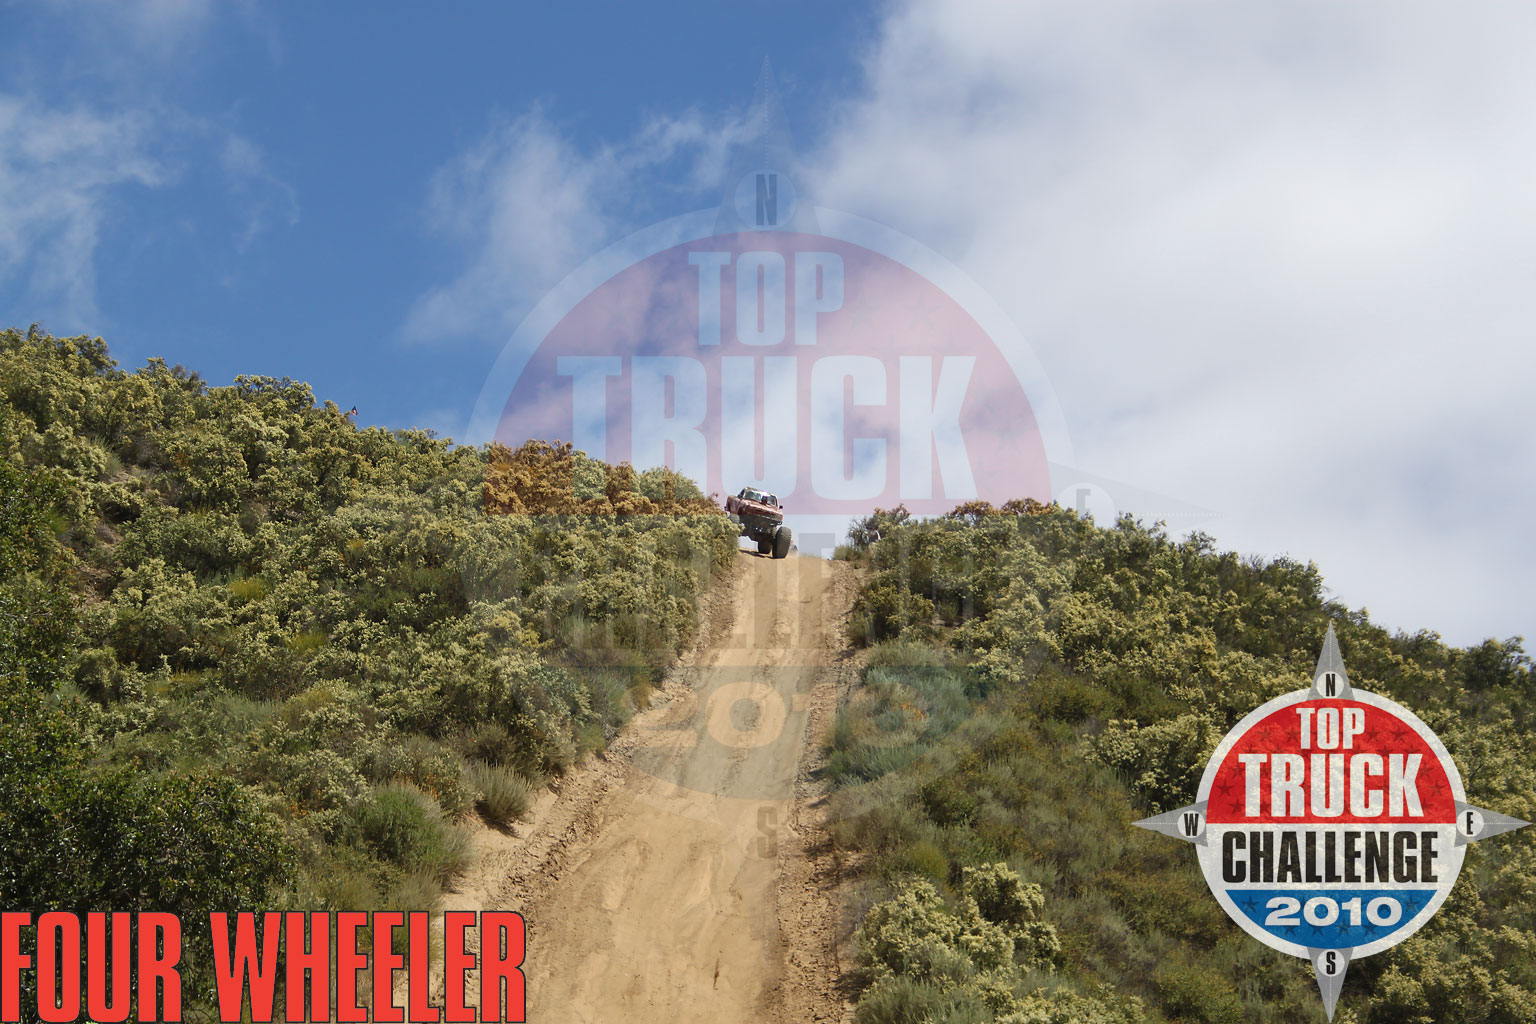 2010 Top Truck Challenge Obstacle Course Brian Barker 1993 Ford Ranger